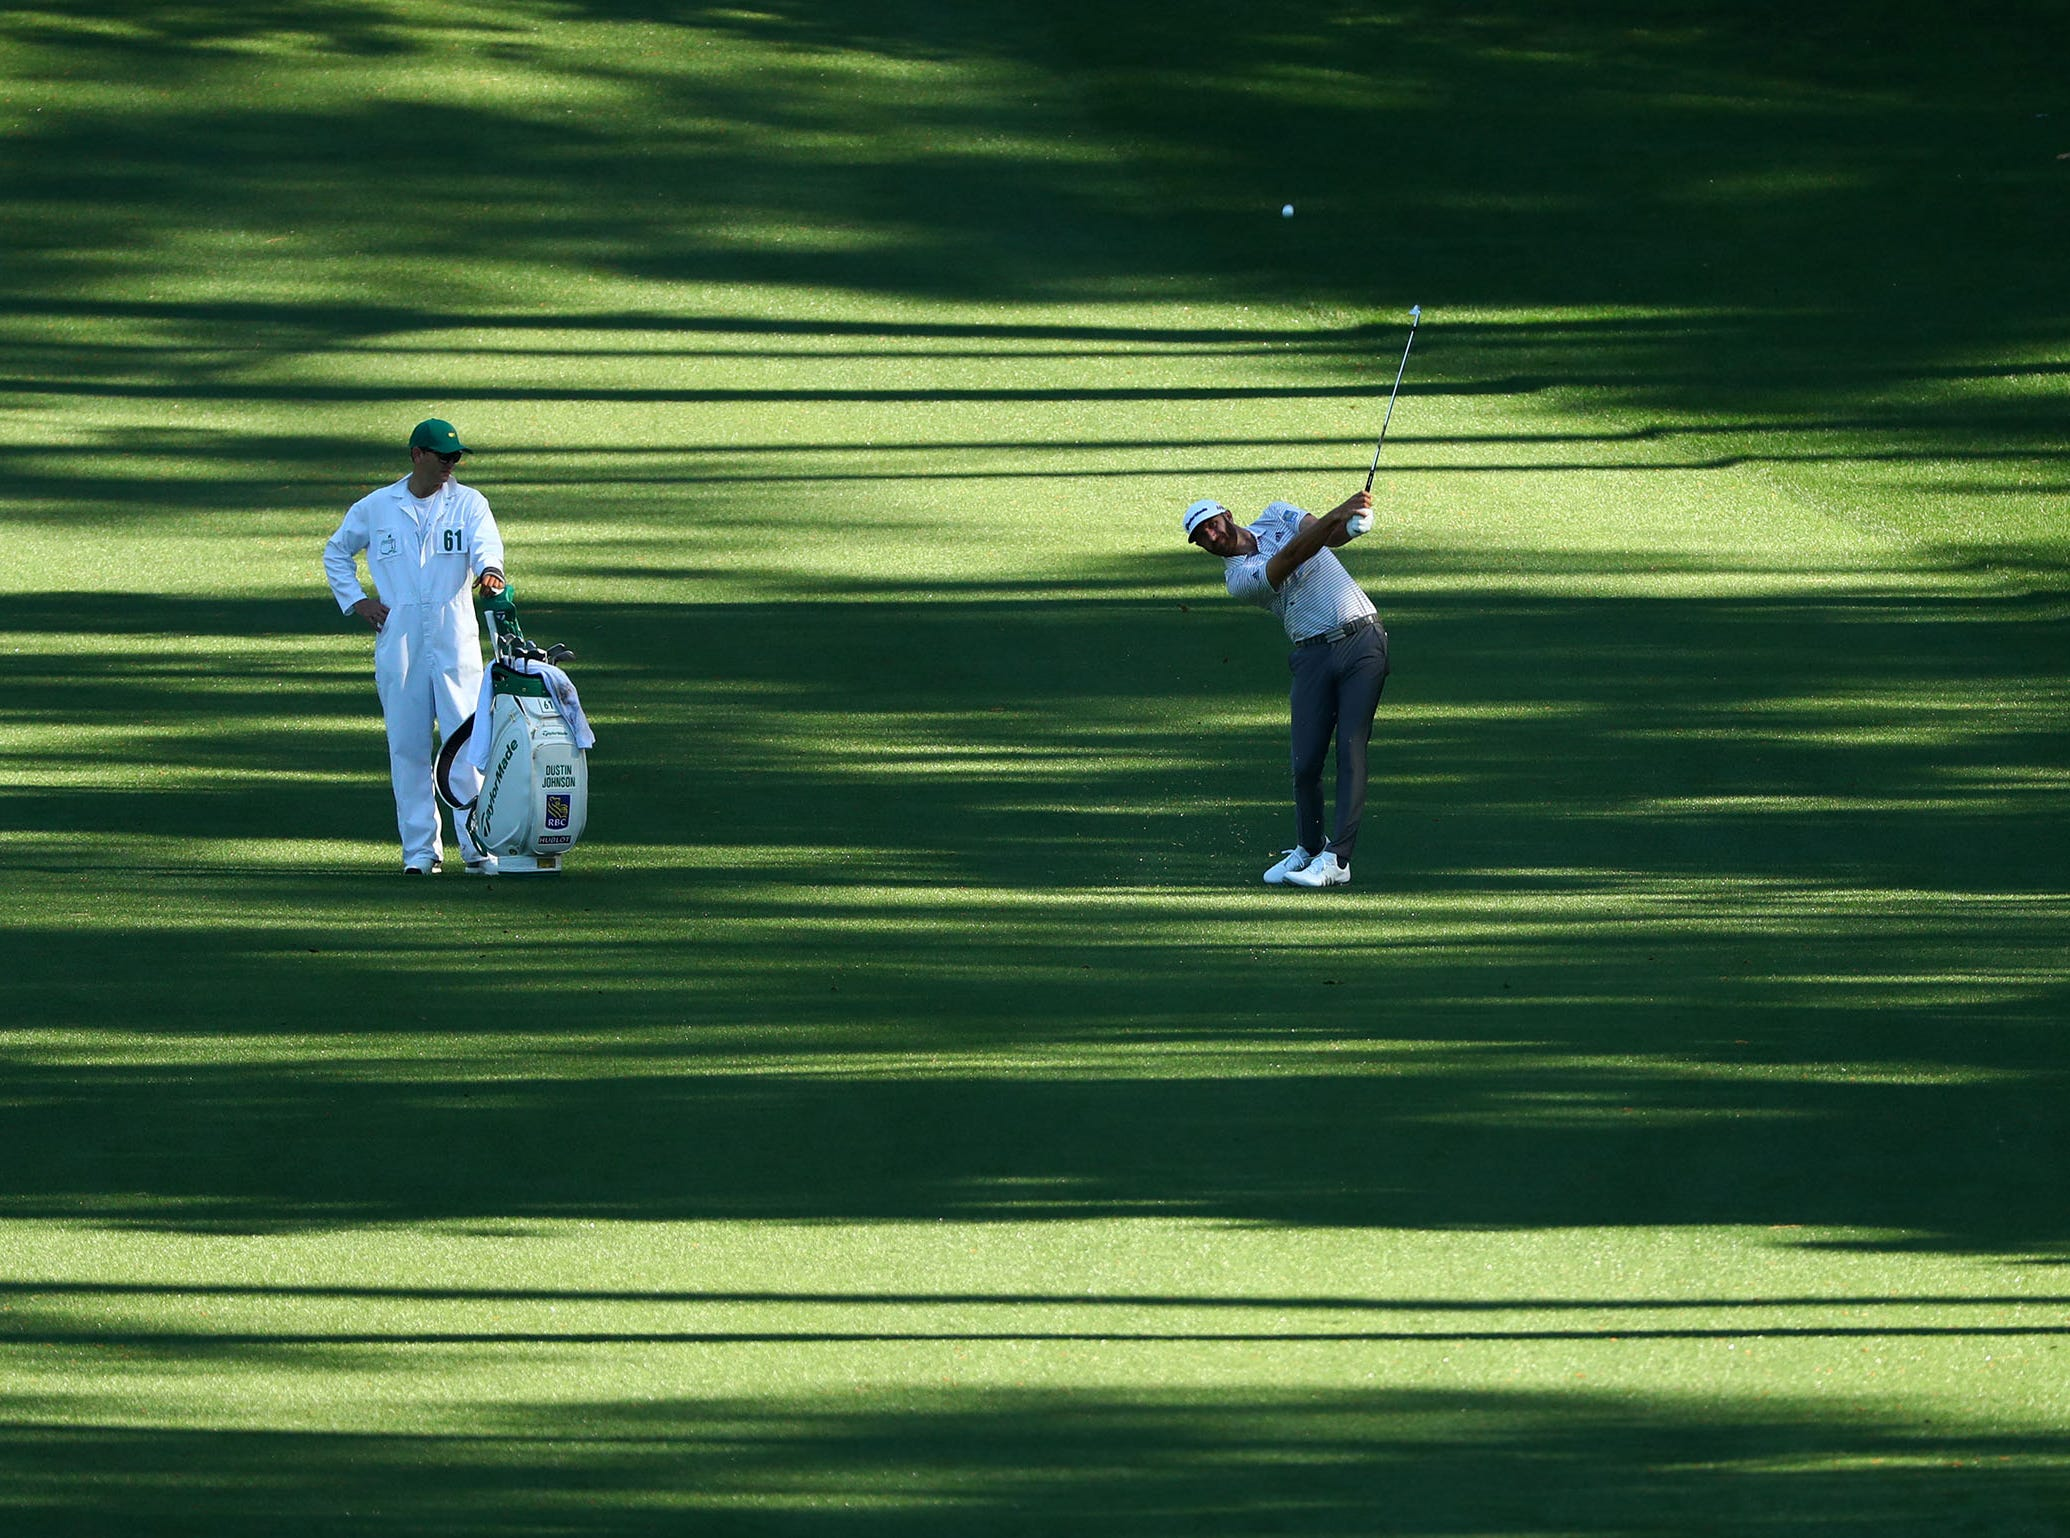 Apr 10, 2019; Augusta, GA, USA; Dustin Johnson plays a shot on the 10th fairway during a practice round for The Masters golf tournament at Augusta National Golf Club. Mandatory Credit: Rob Schumacher-USA TODAY Sports